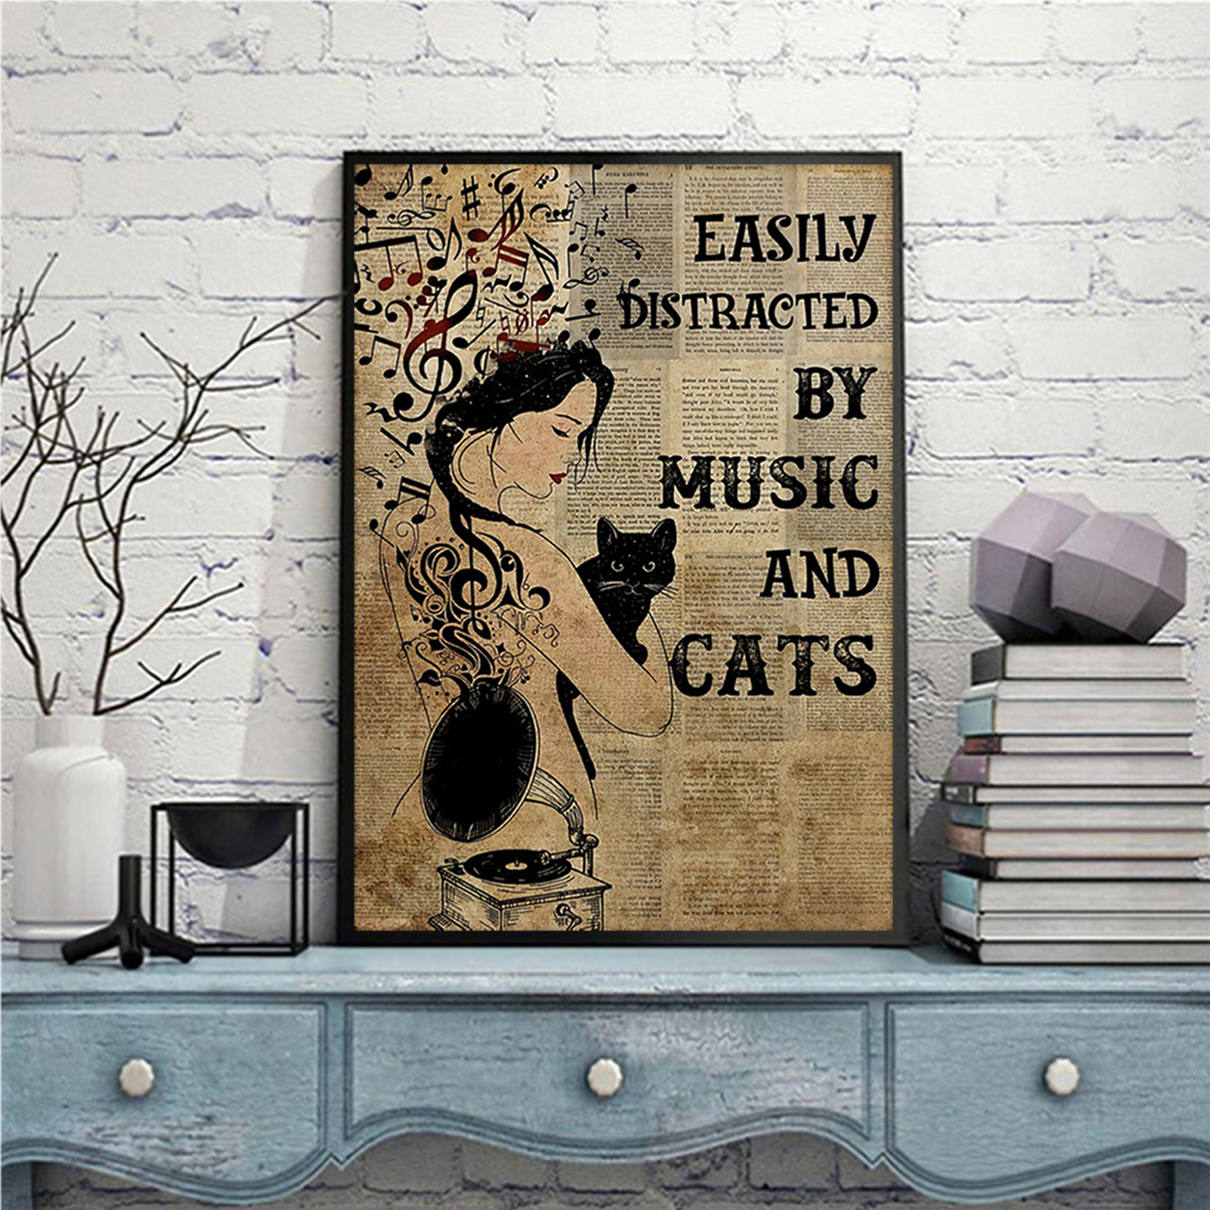 Easily distracted by music and cats poster A3